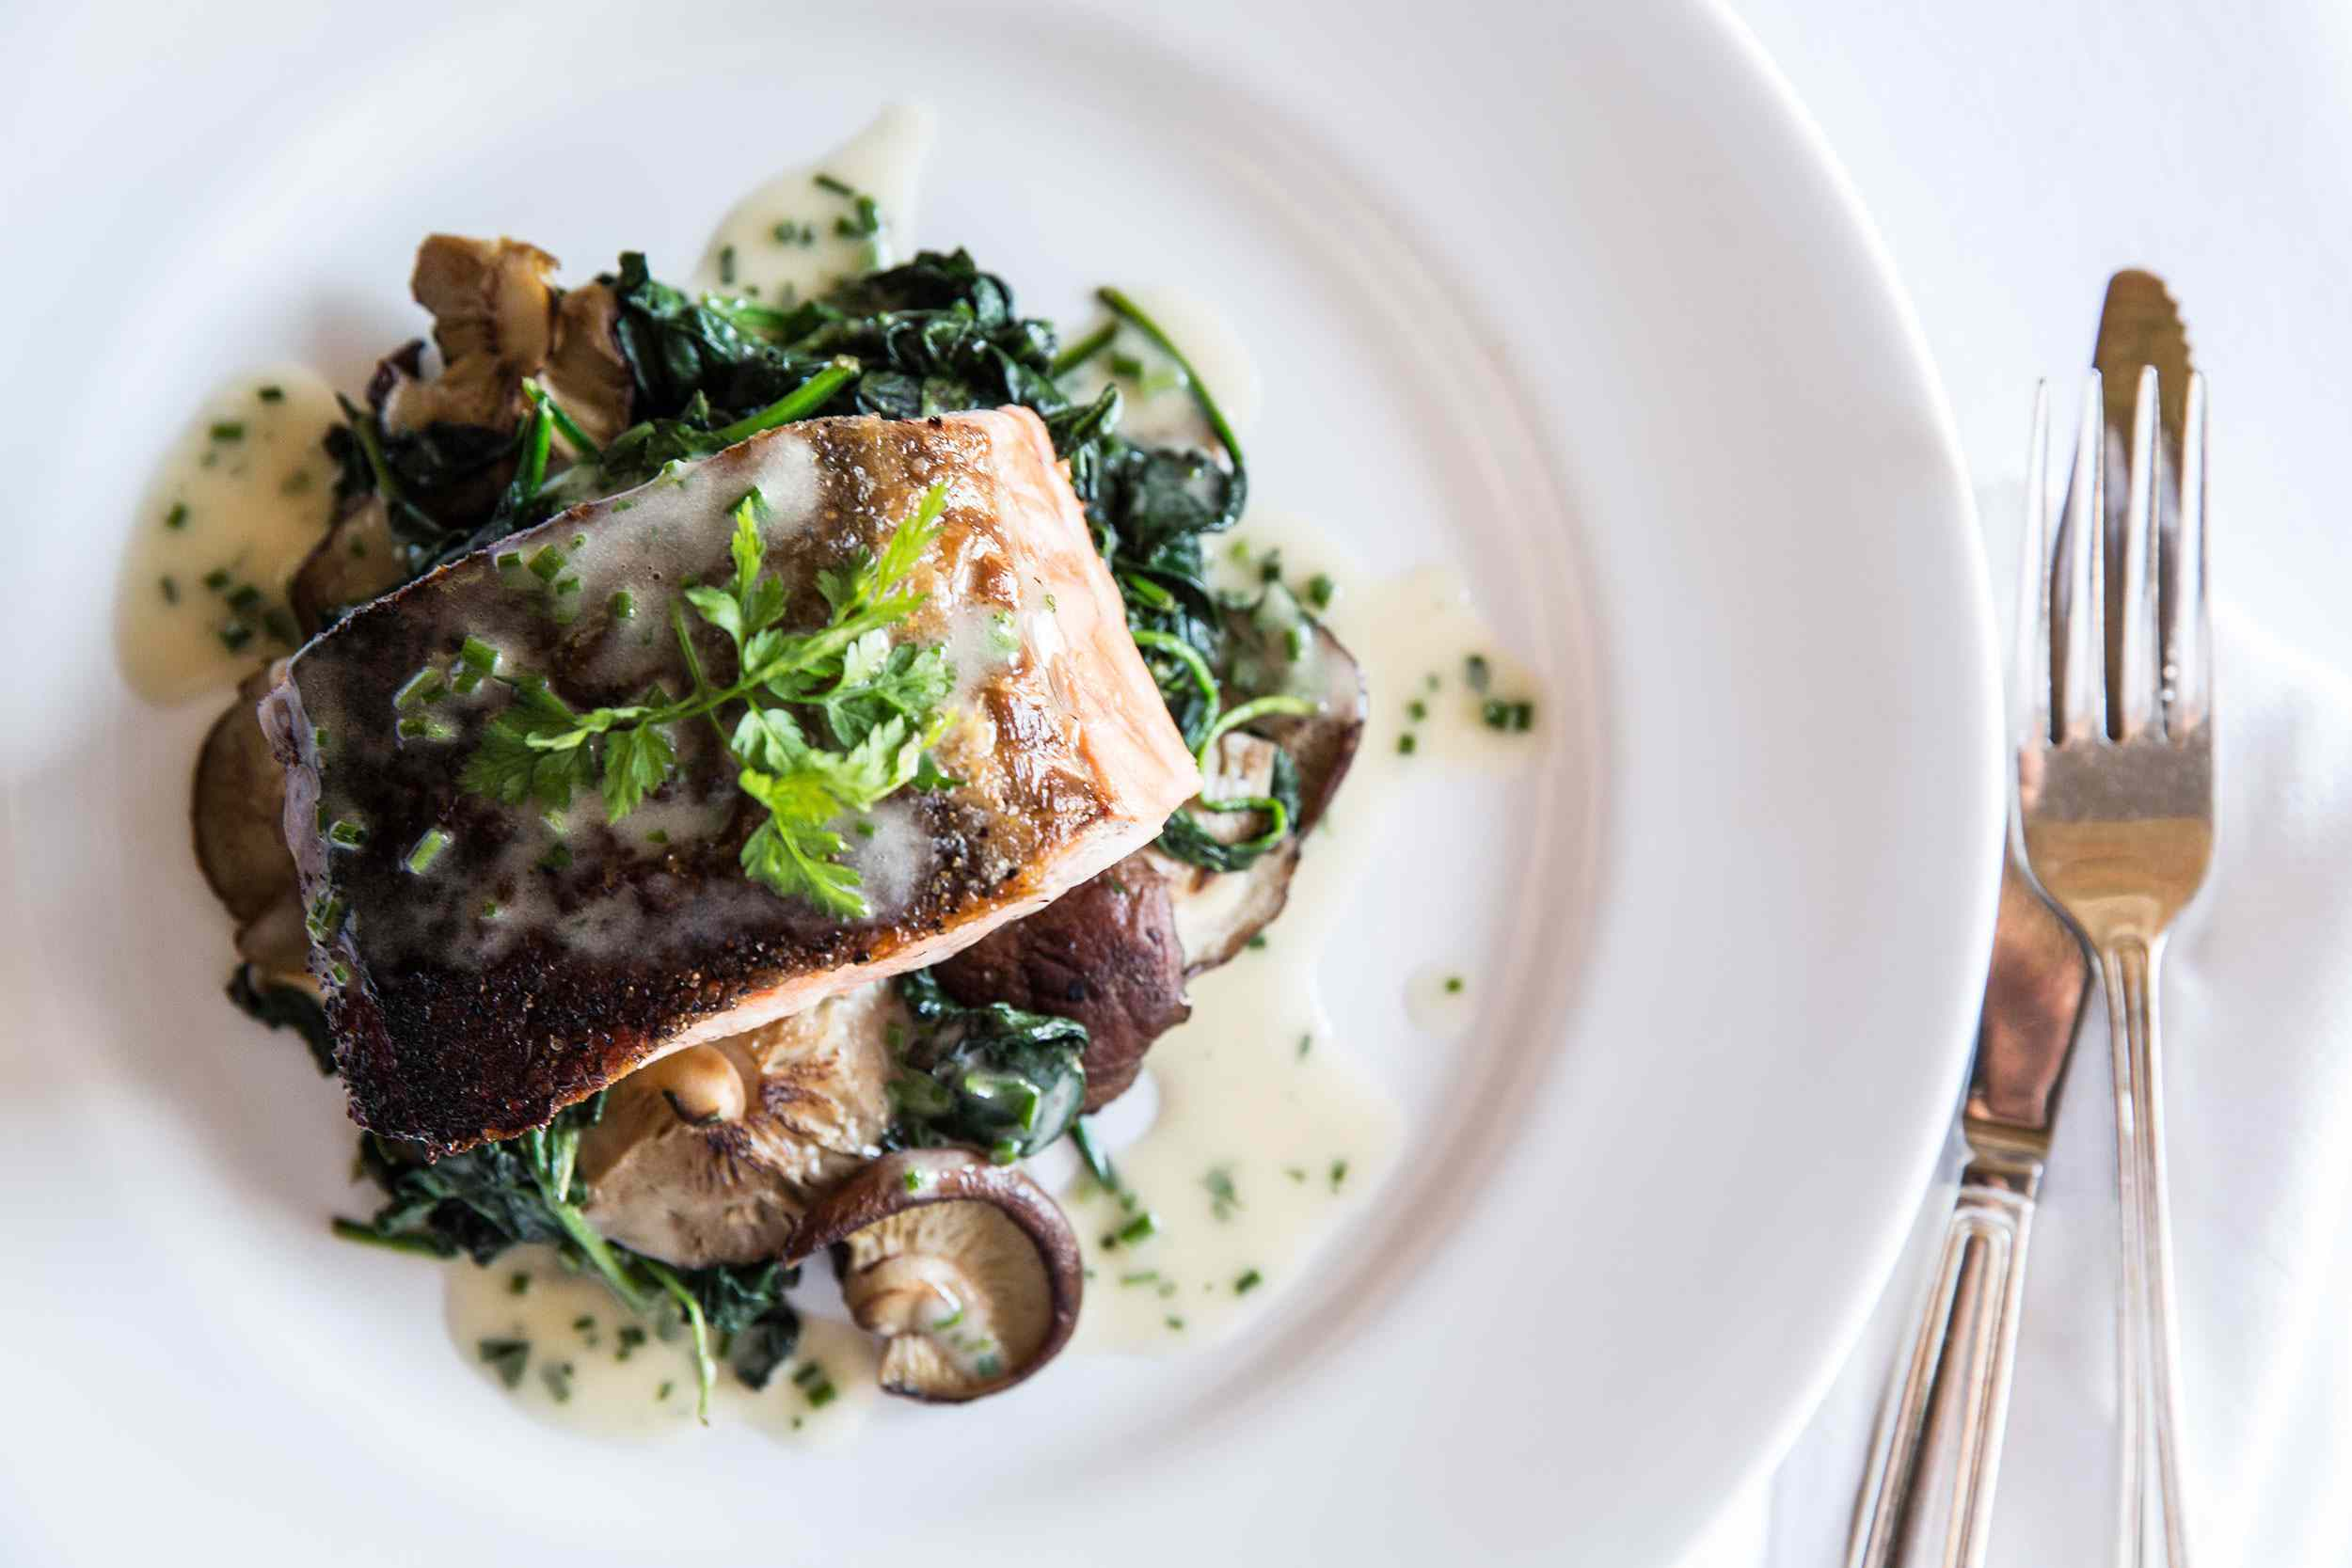 overhead shot of seared fish on top of mushrooms and spinach, garnished with cilantro. There is a fork and knife to the right of the plate